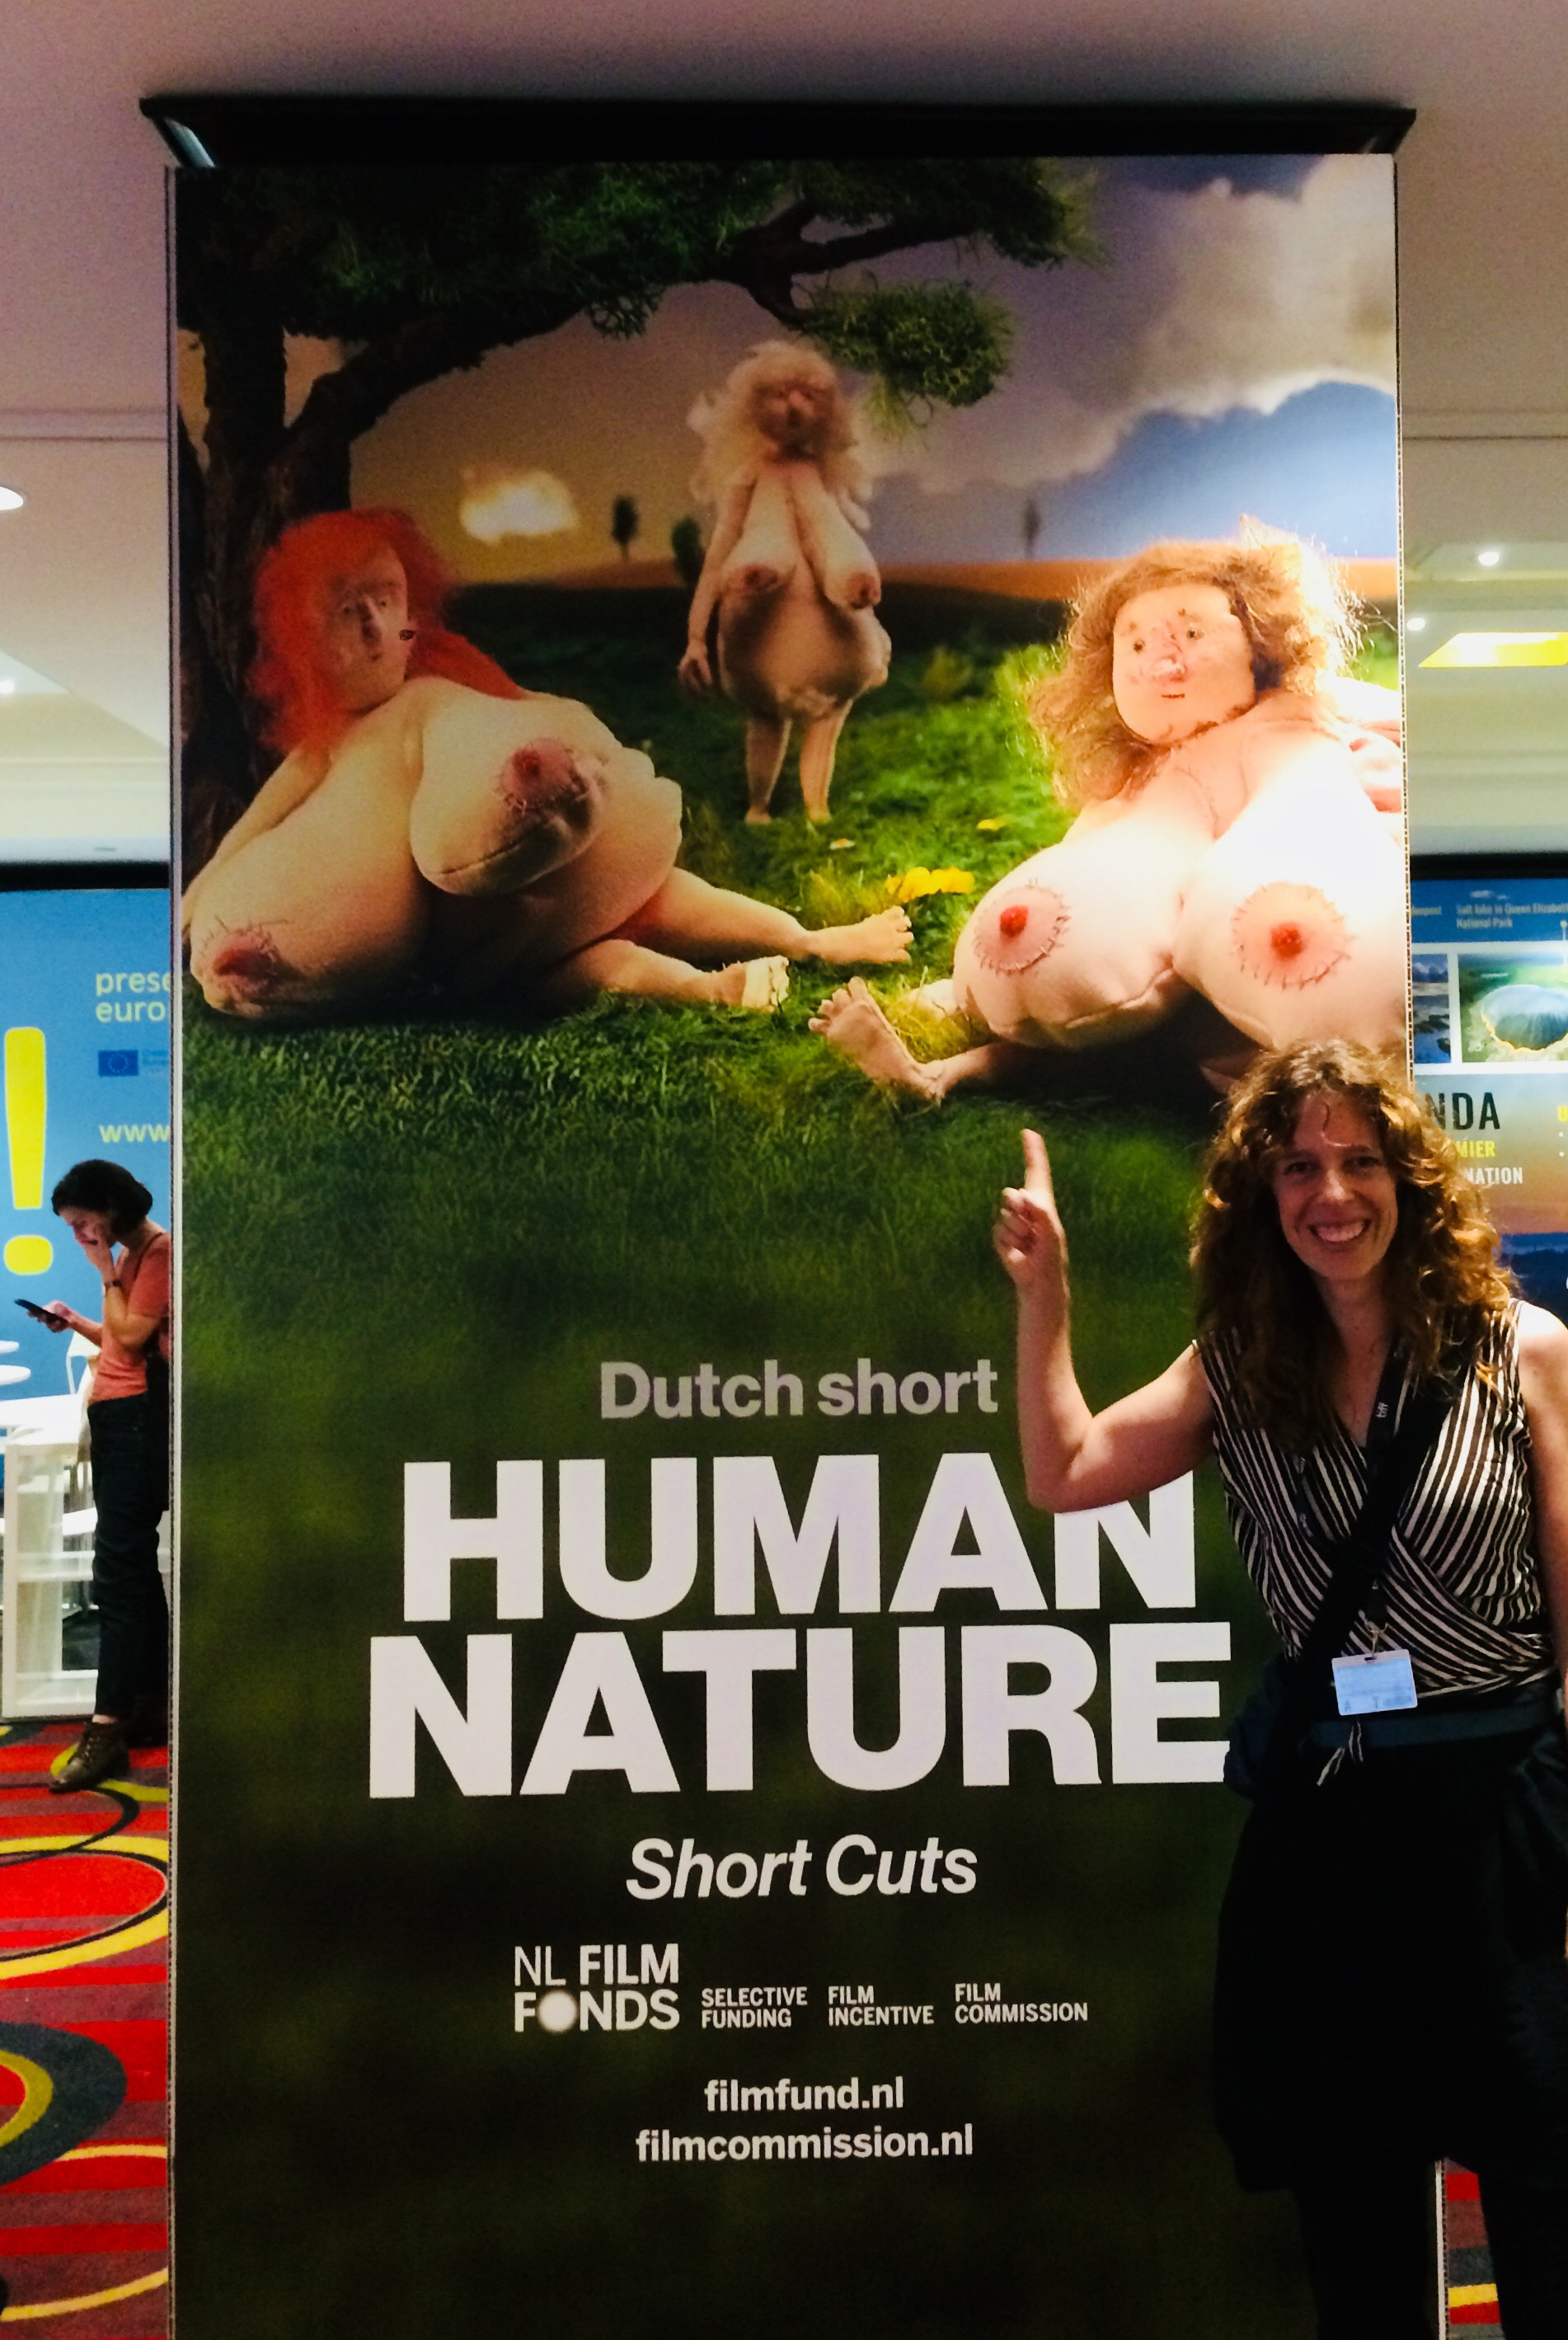 About last week: Zaou Vaughan at TIFF - Human Nature at the Short Cut's Programme